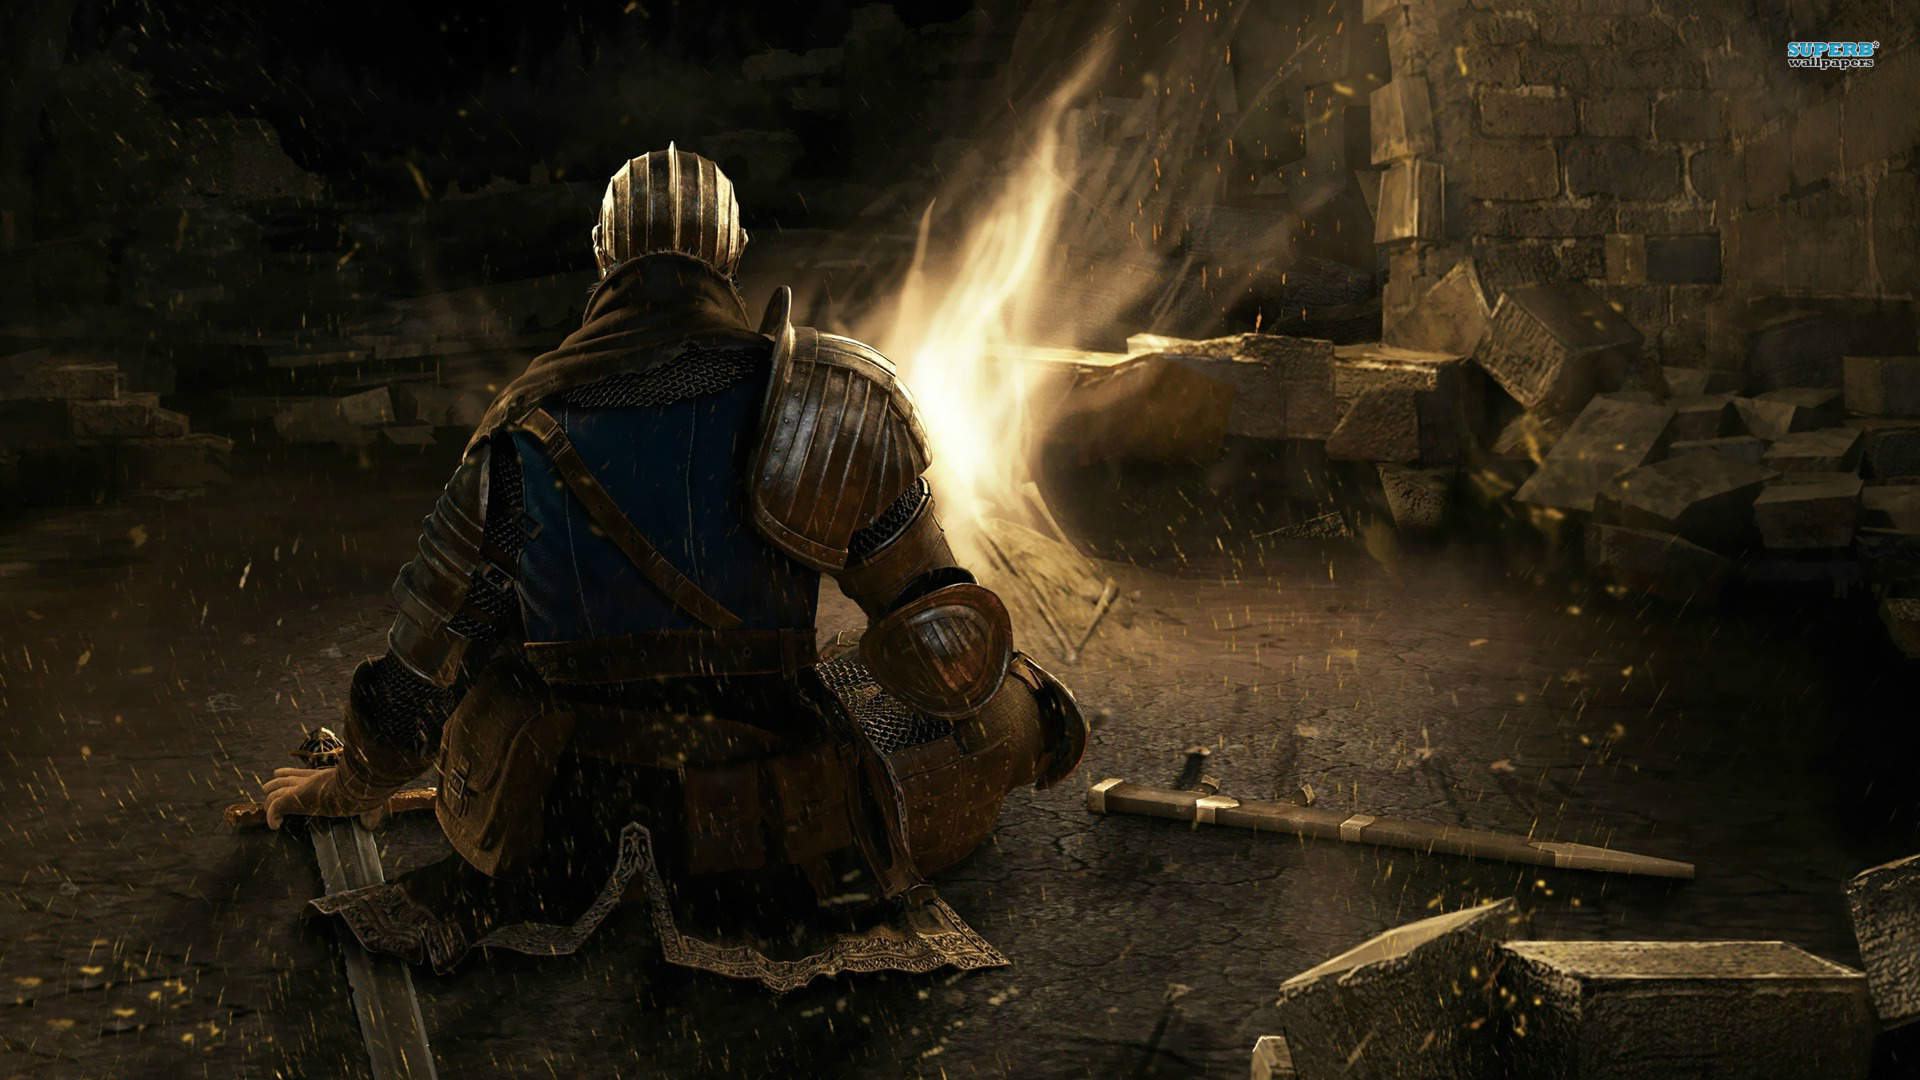 Fonds dcran Dark Souls tous les wallpapers Dark Souls 1920x1080